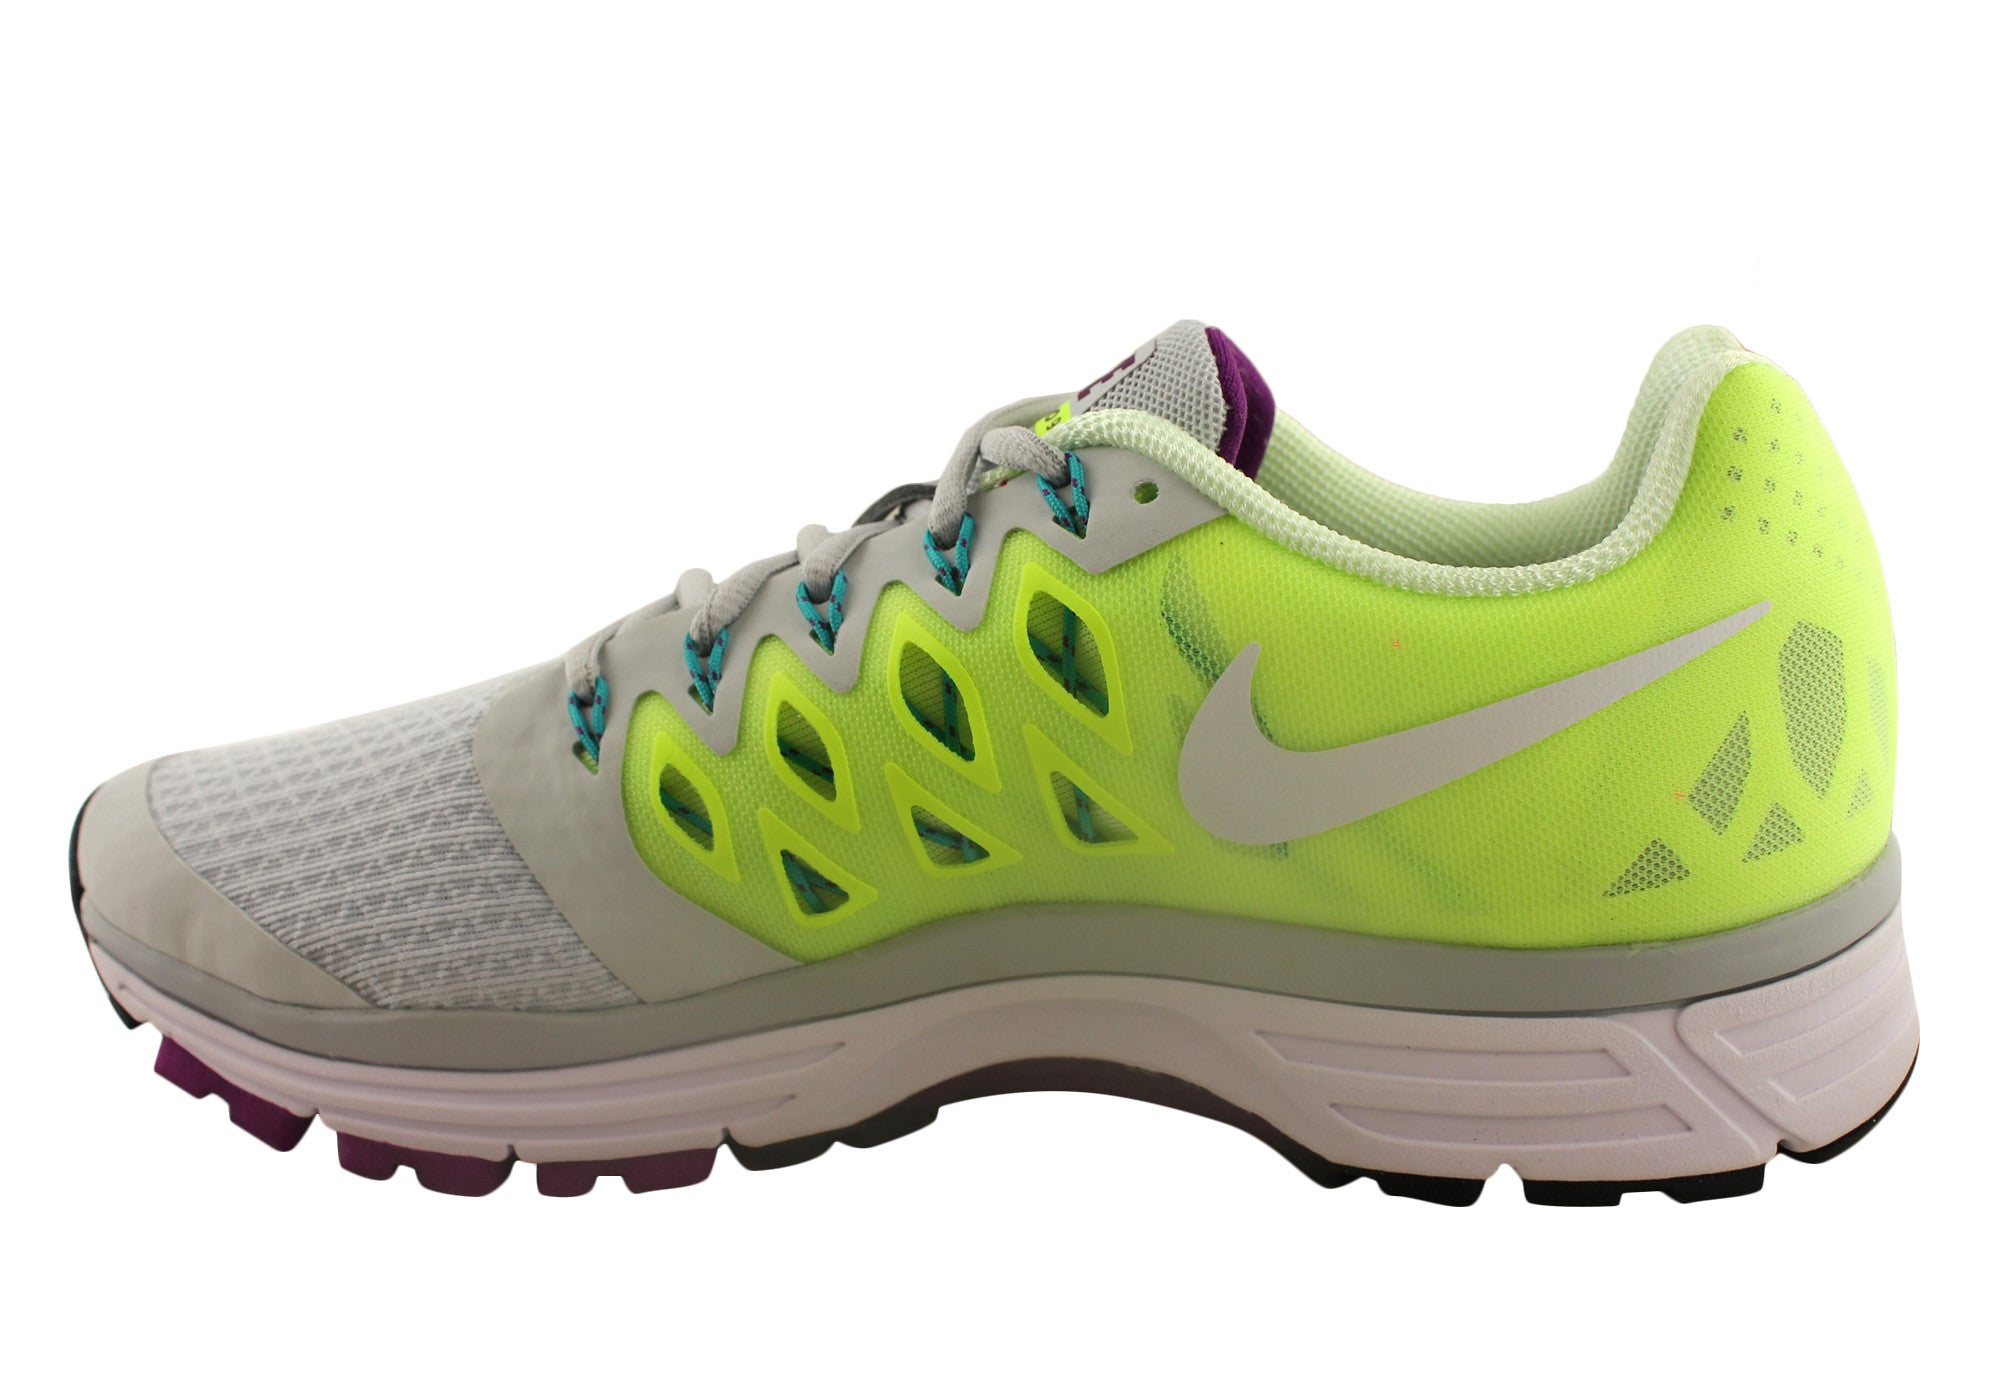 Nike Womens Zoom Vomero 9 Running Shoes (Wide Width)